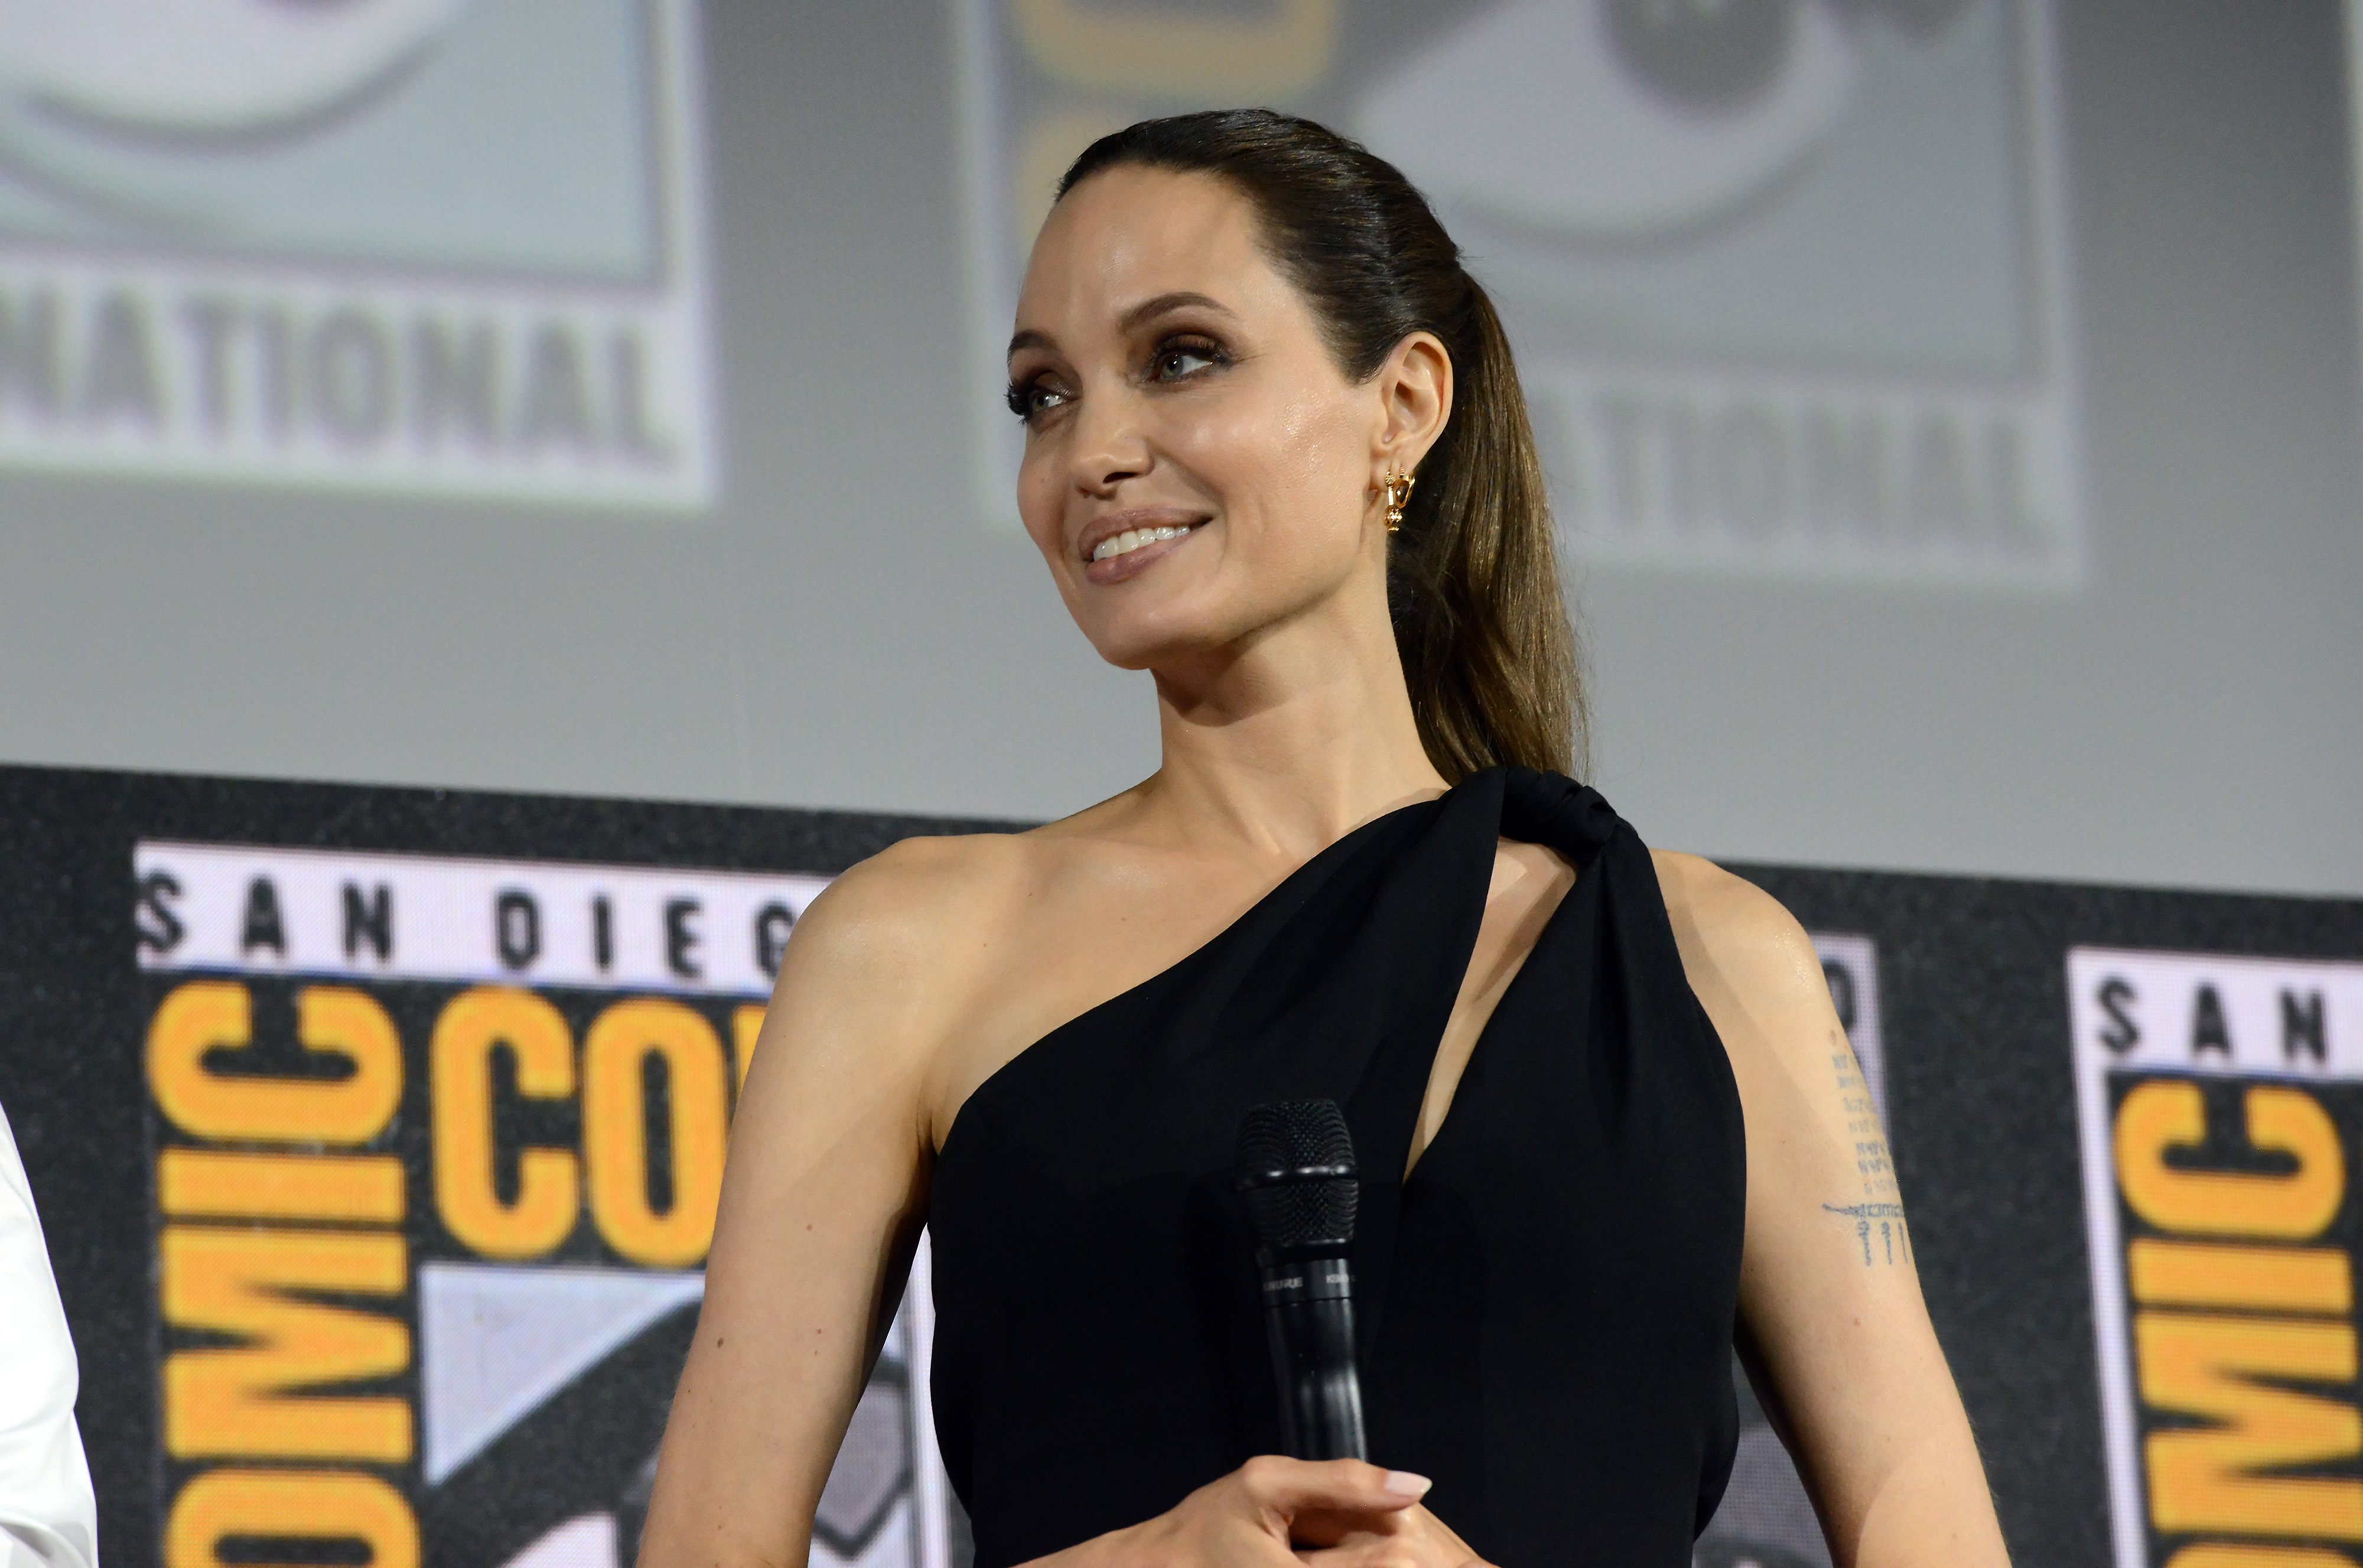 SAN DIEGO, CALIFORNIA - JULY 20: Angelina Jolie speaks at the Marvel Studios Panel during 2019 Comic-Con International at San Diego Convention Center on July 20, 2019 in San Diego, California. (Photo by Albert L. Ortega/Getty Images)